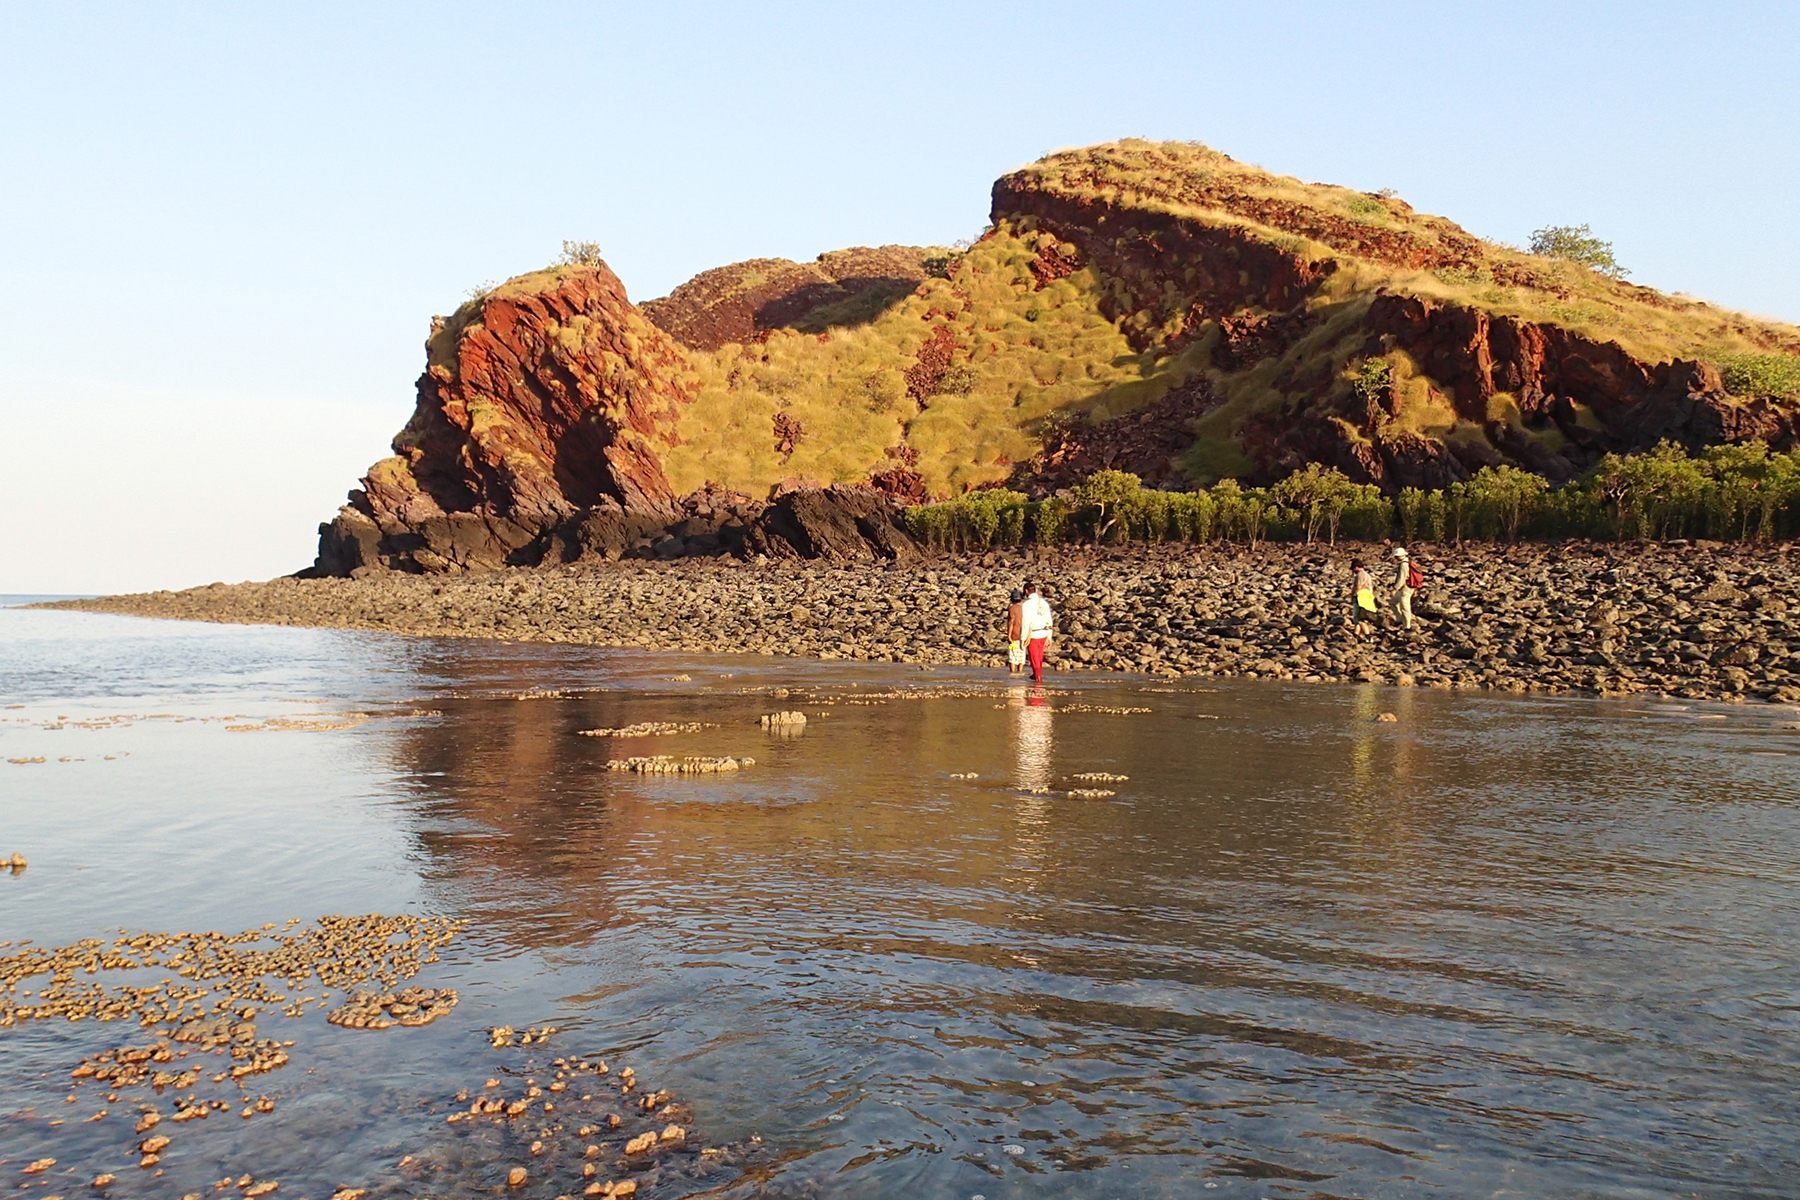 A photo of Irvine Island in the Kimberley